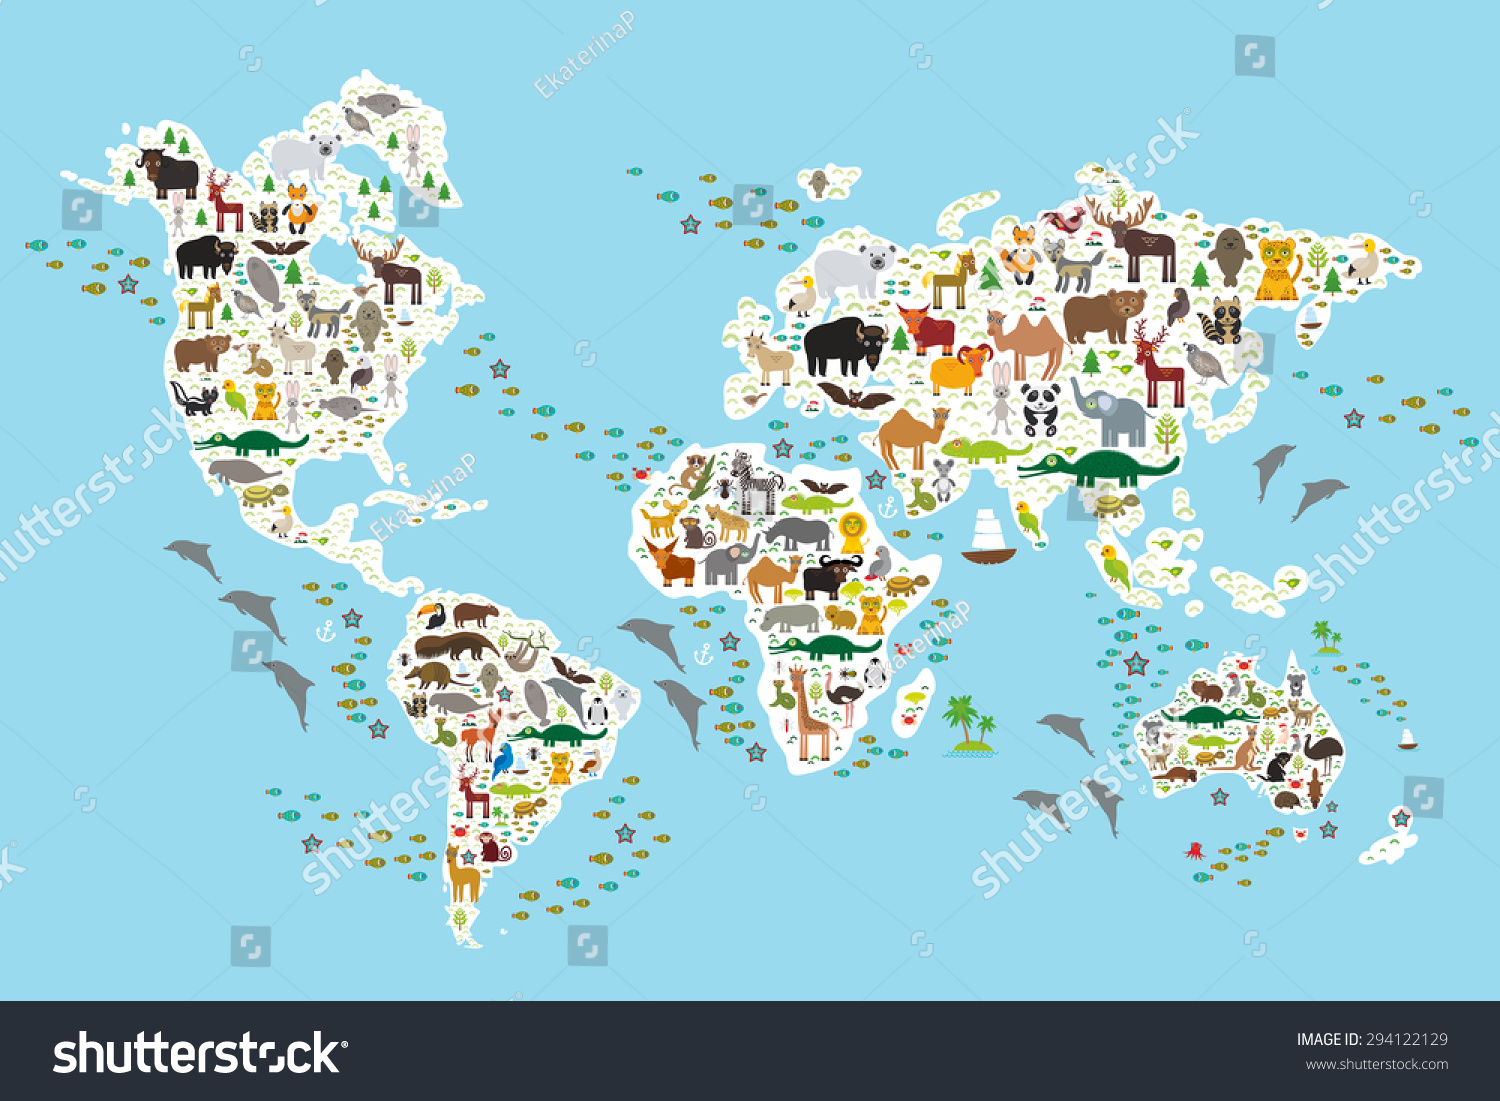 Cartoon Animal World Map For Children And Kids, Animals From All Over The  World,